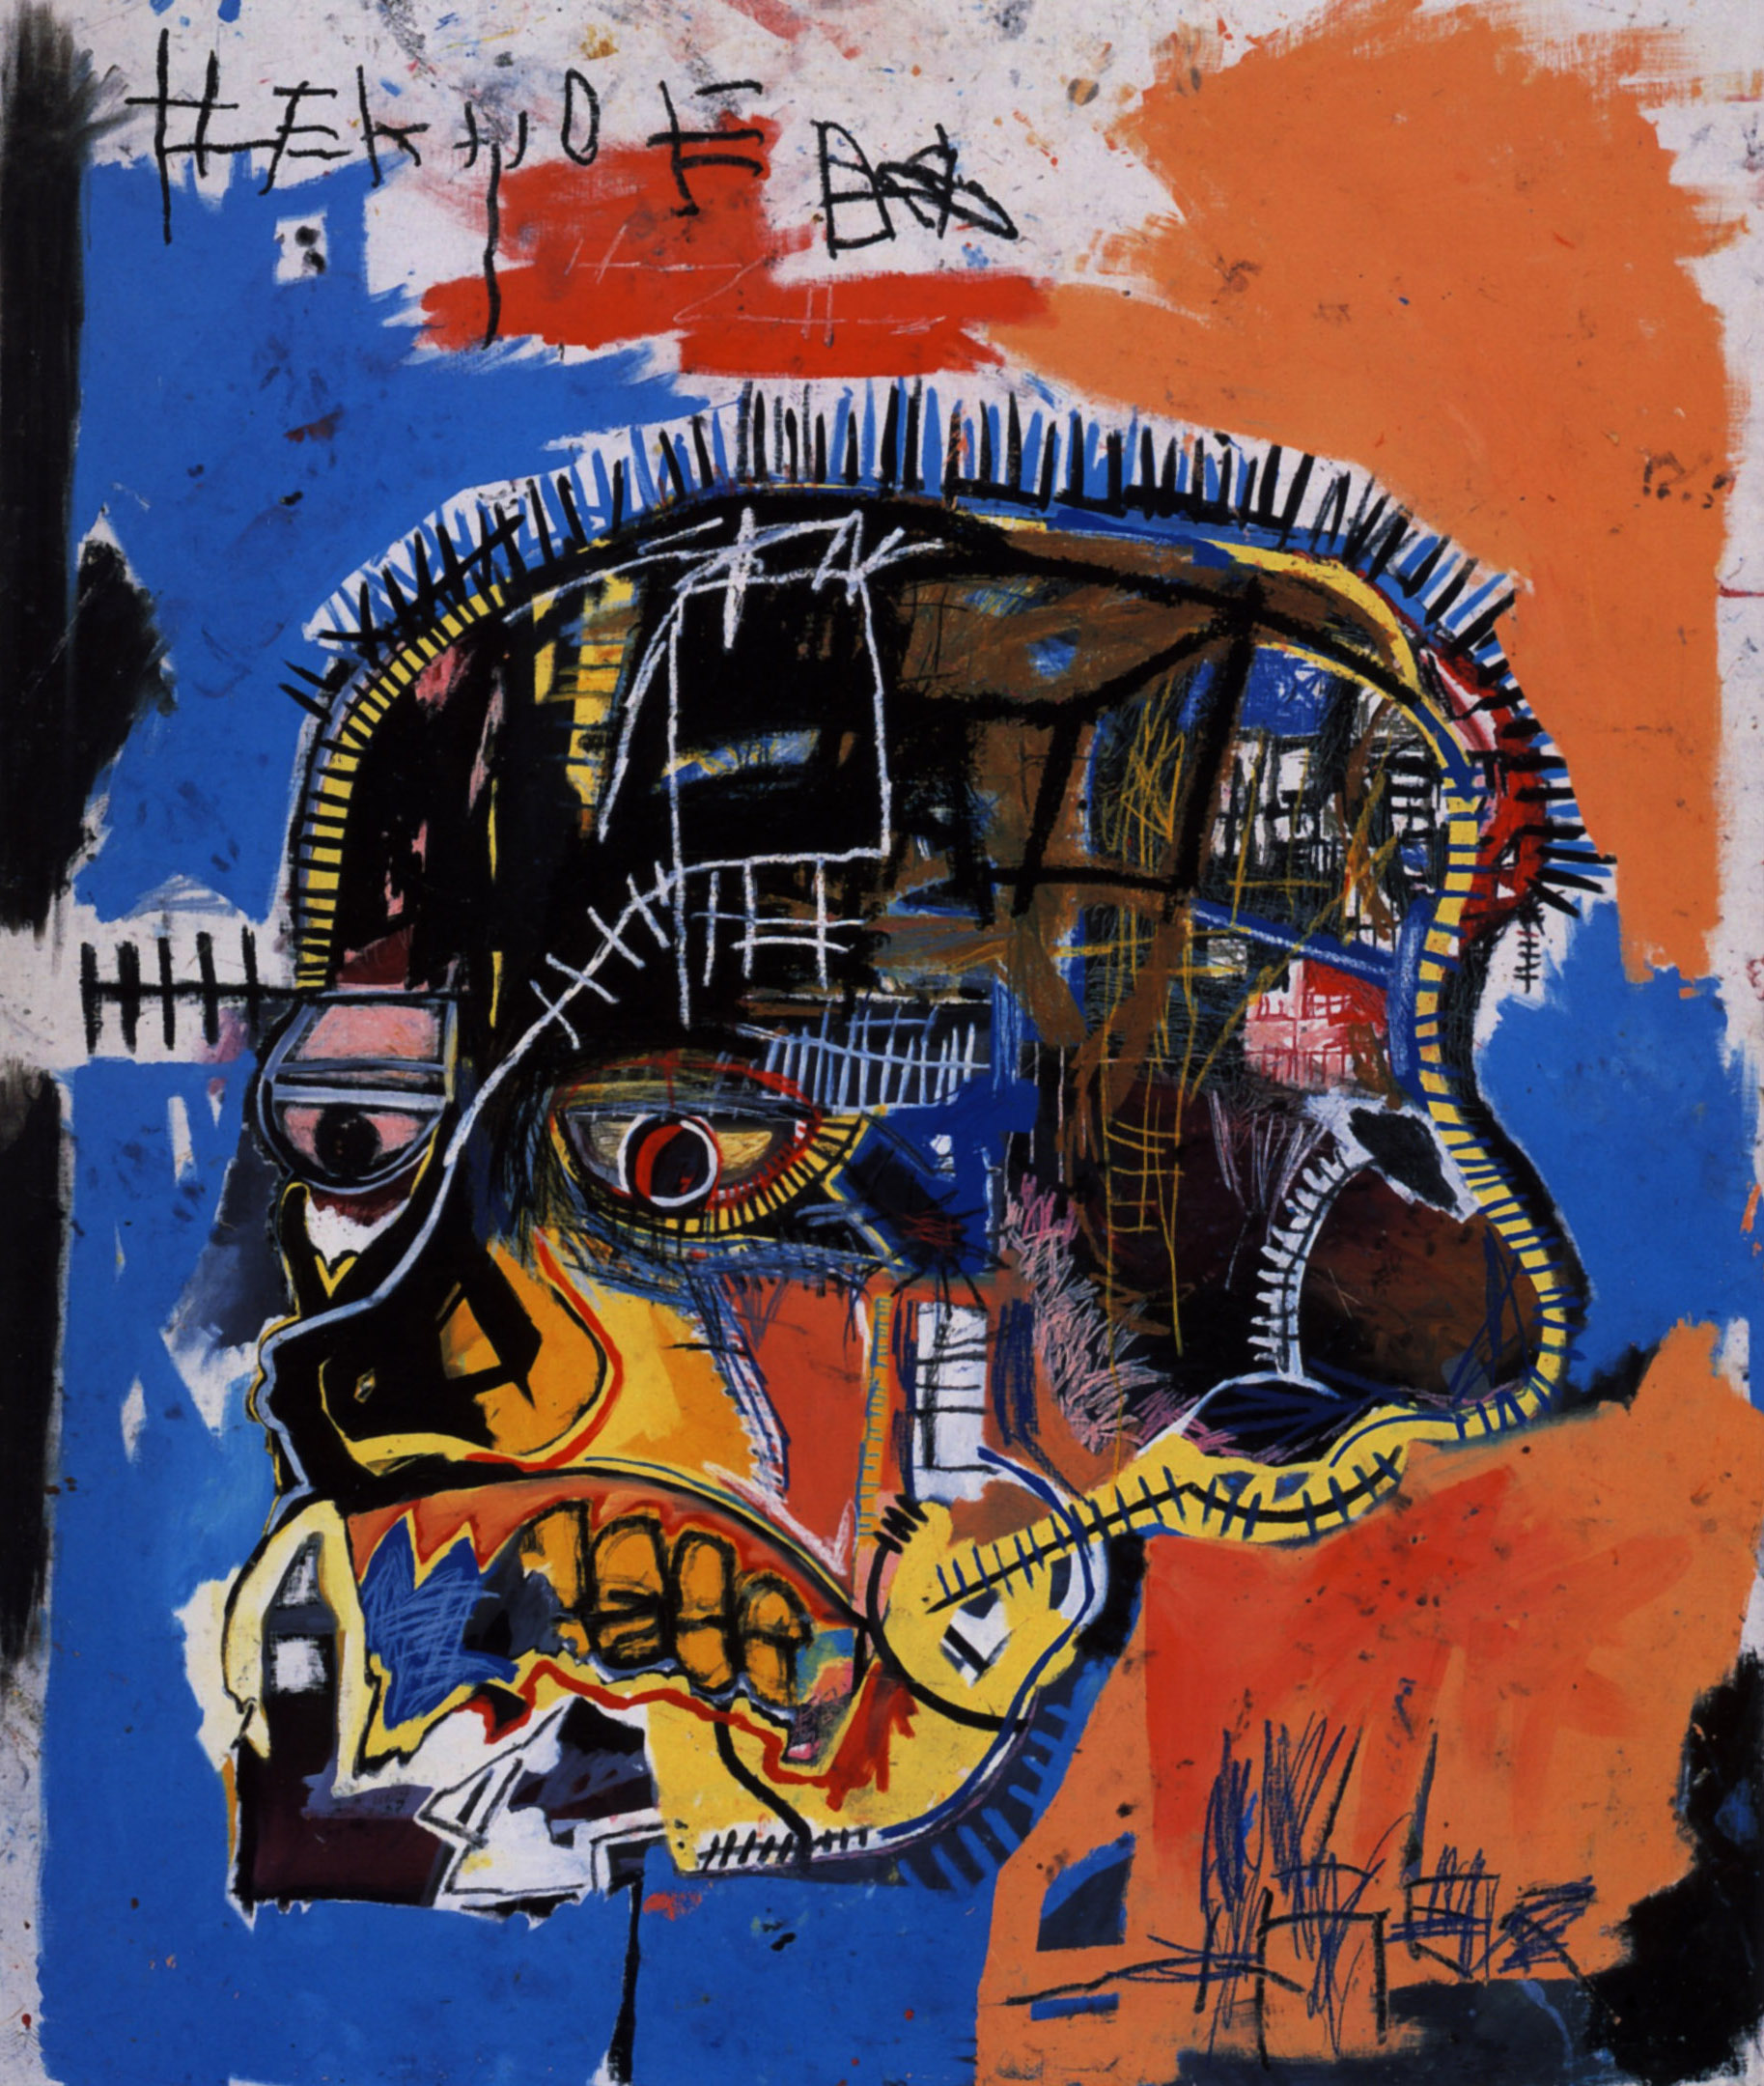 Yi Wei Lim, yiweilim, basquiat, jean-michel basquiat, basquiat movie, basquiat film, basquiat artist, basquiat hong kong, gagosian, skull, black painter, painter, norman, psycho